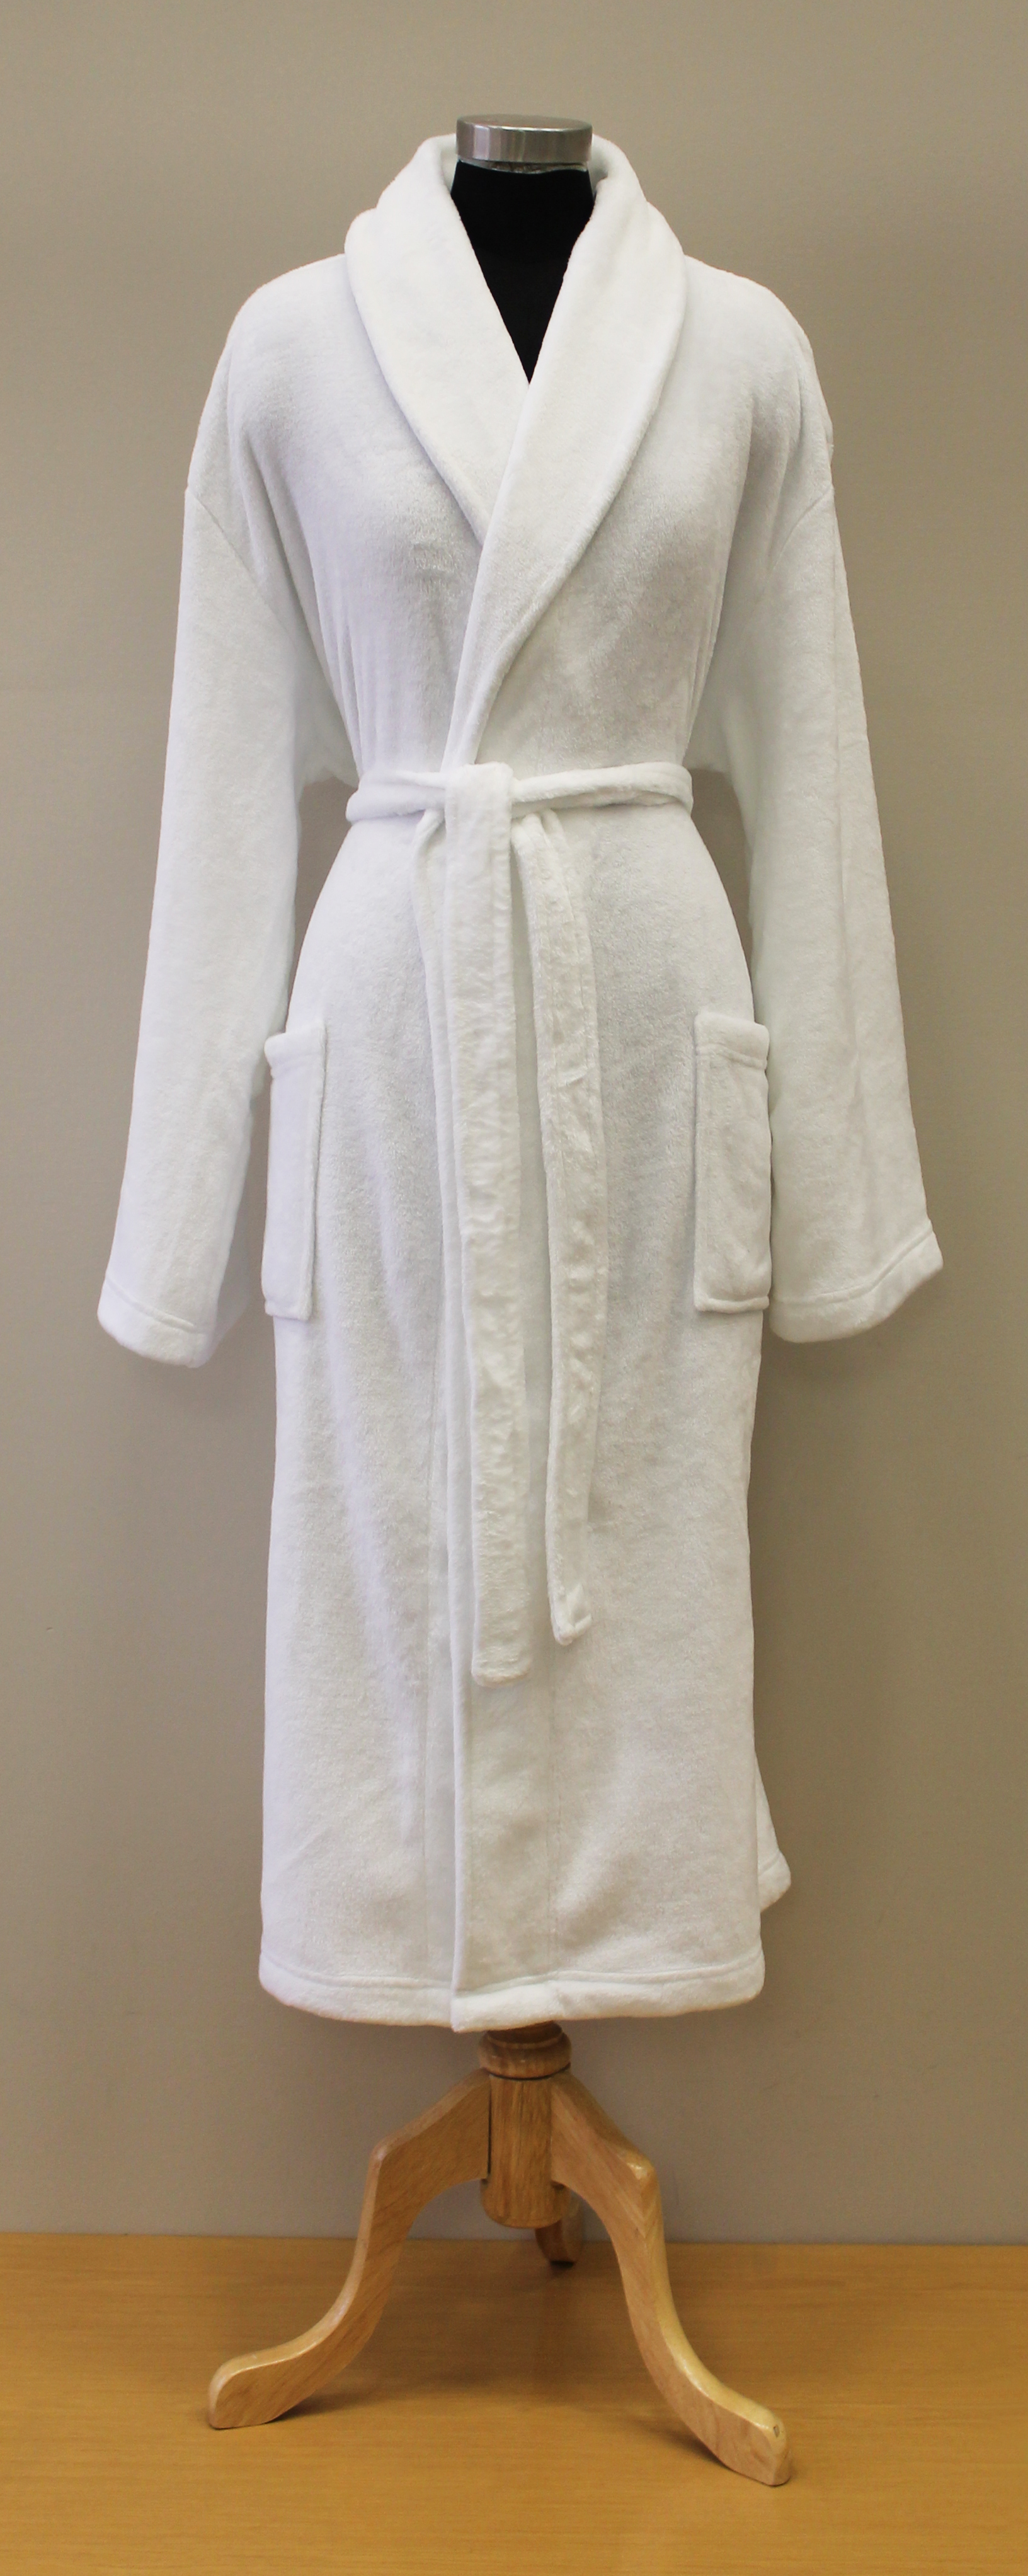 Plush Lounge Robe - White